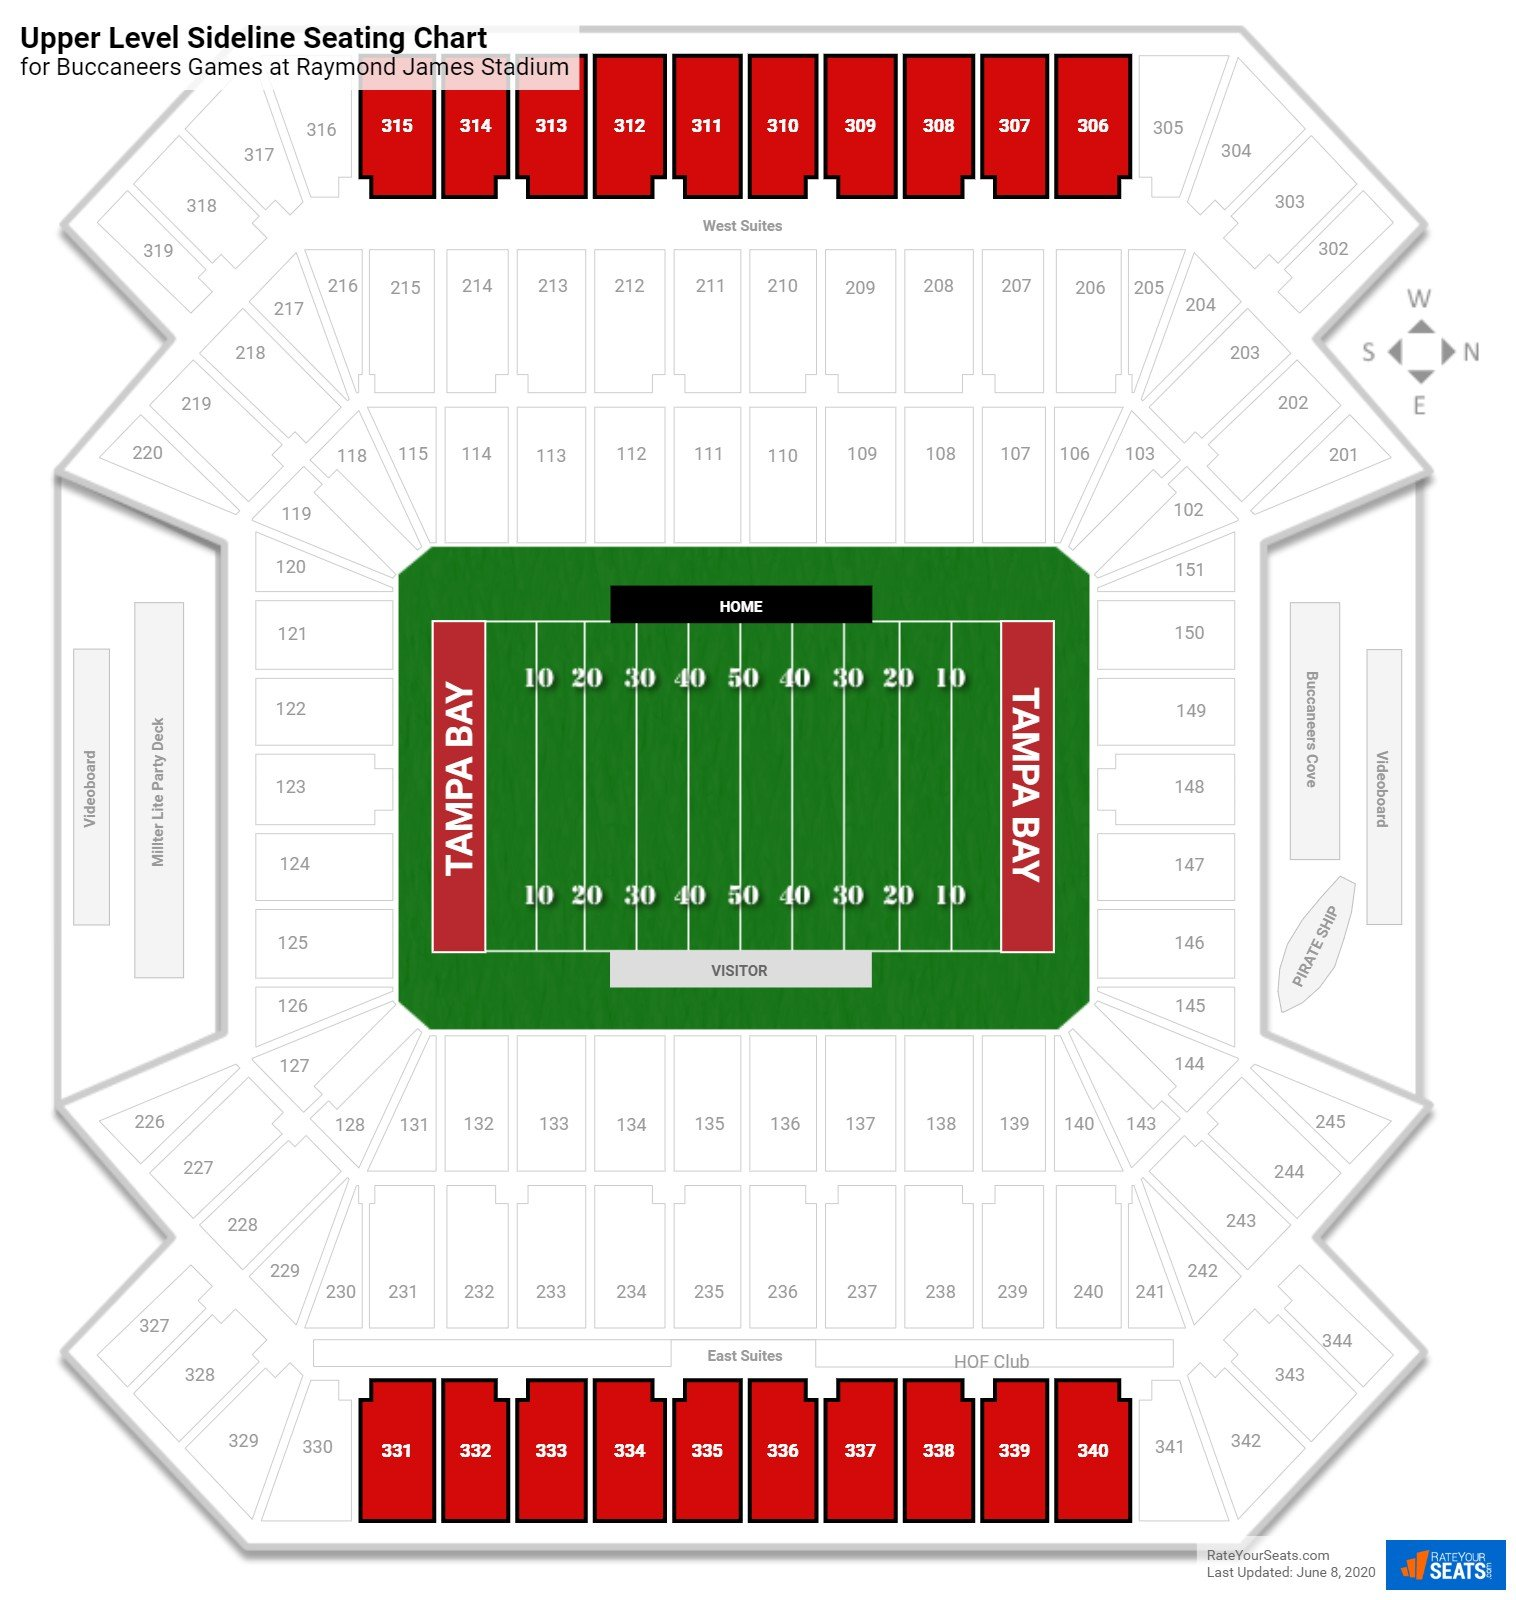 Raymond James Stadium Upper Level Sideline seating chart